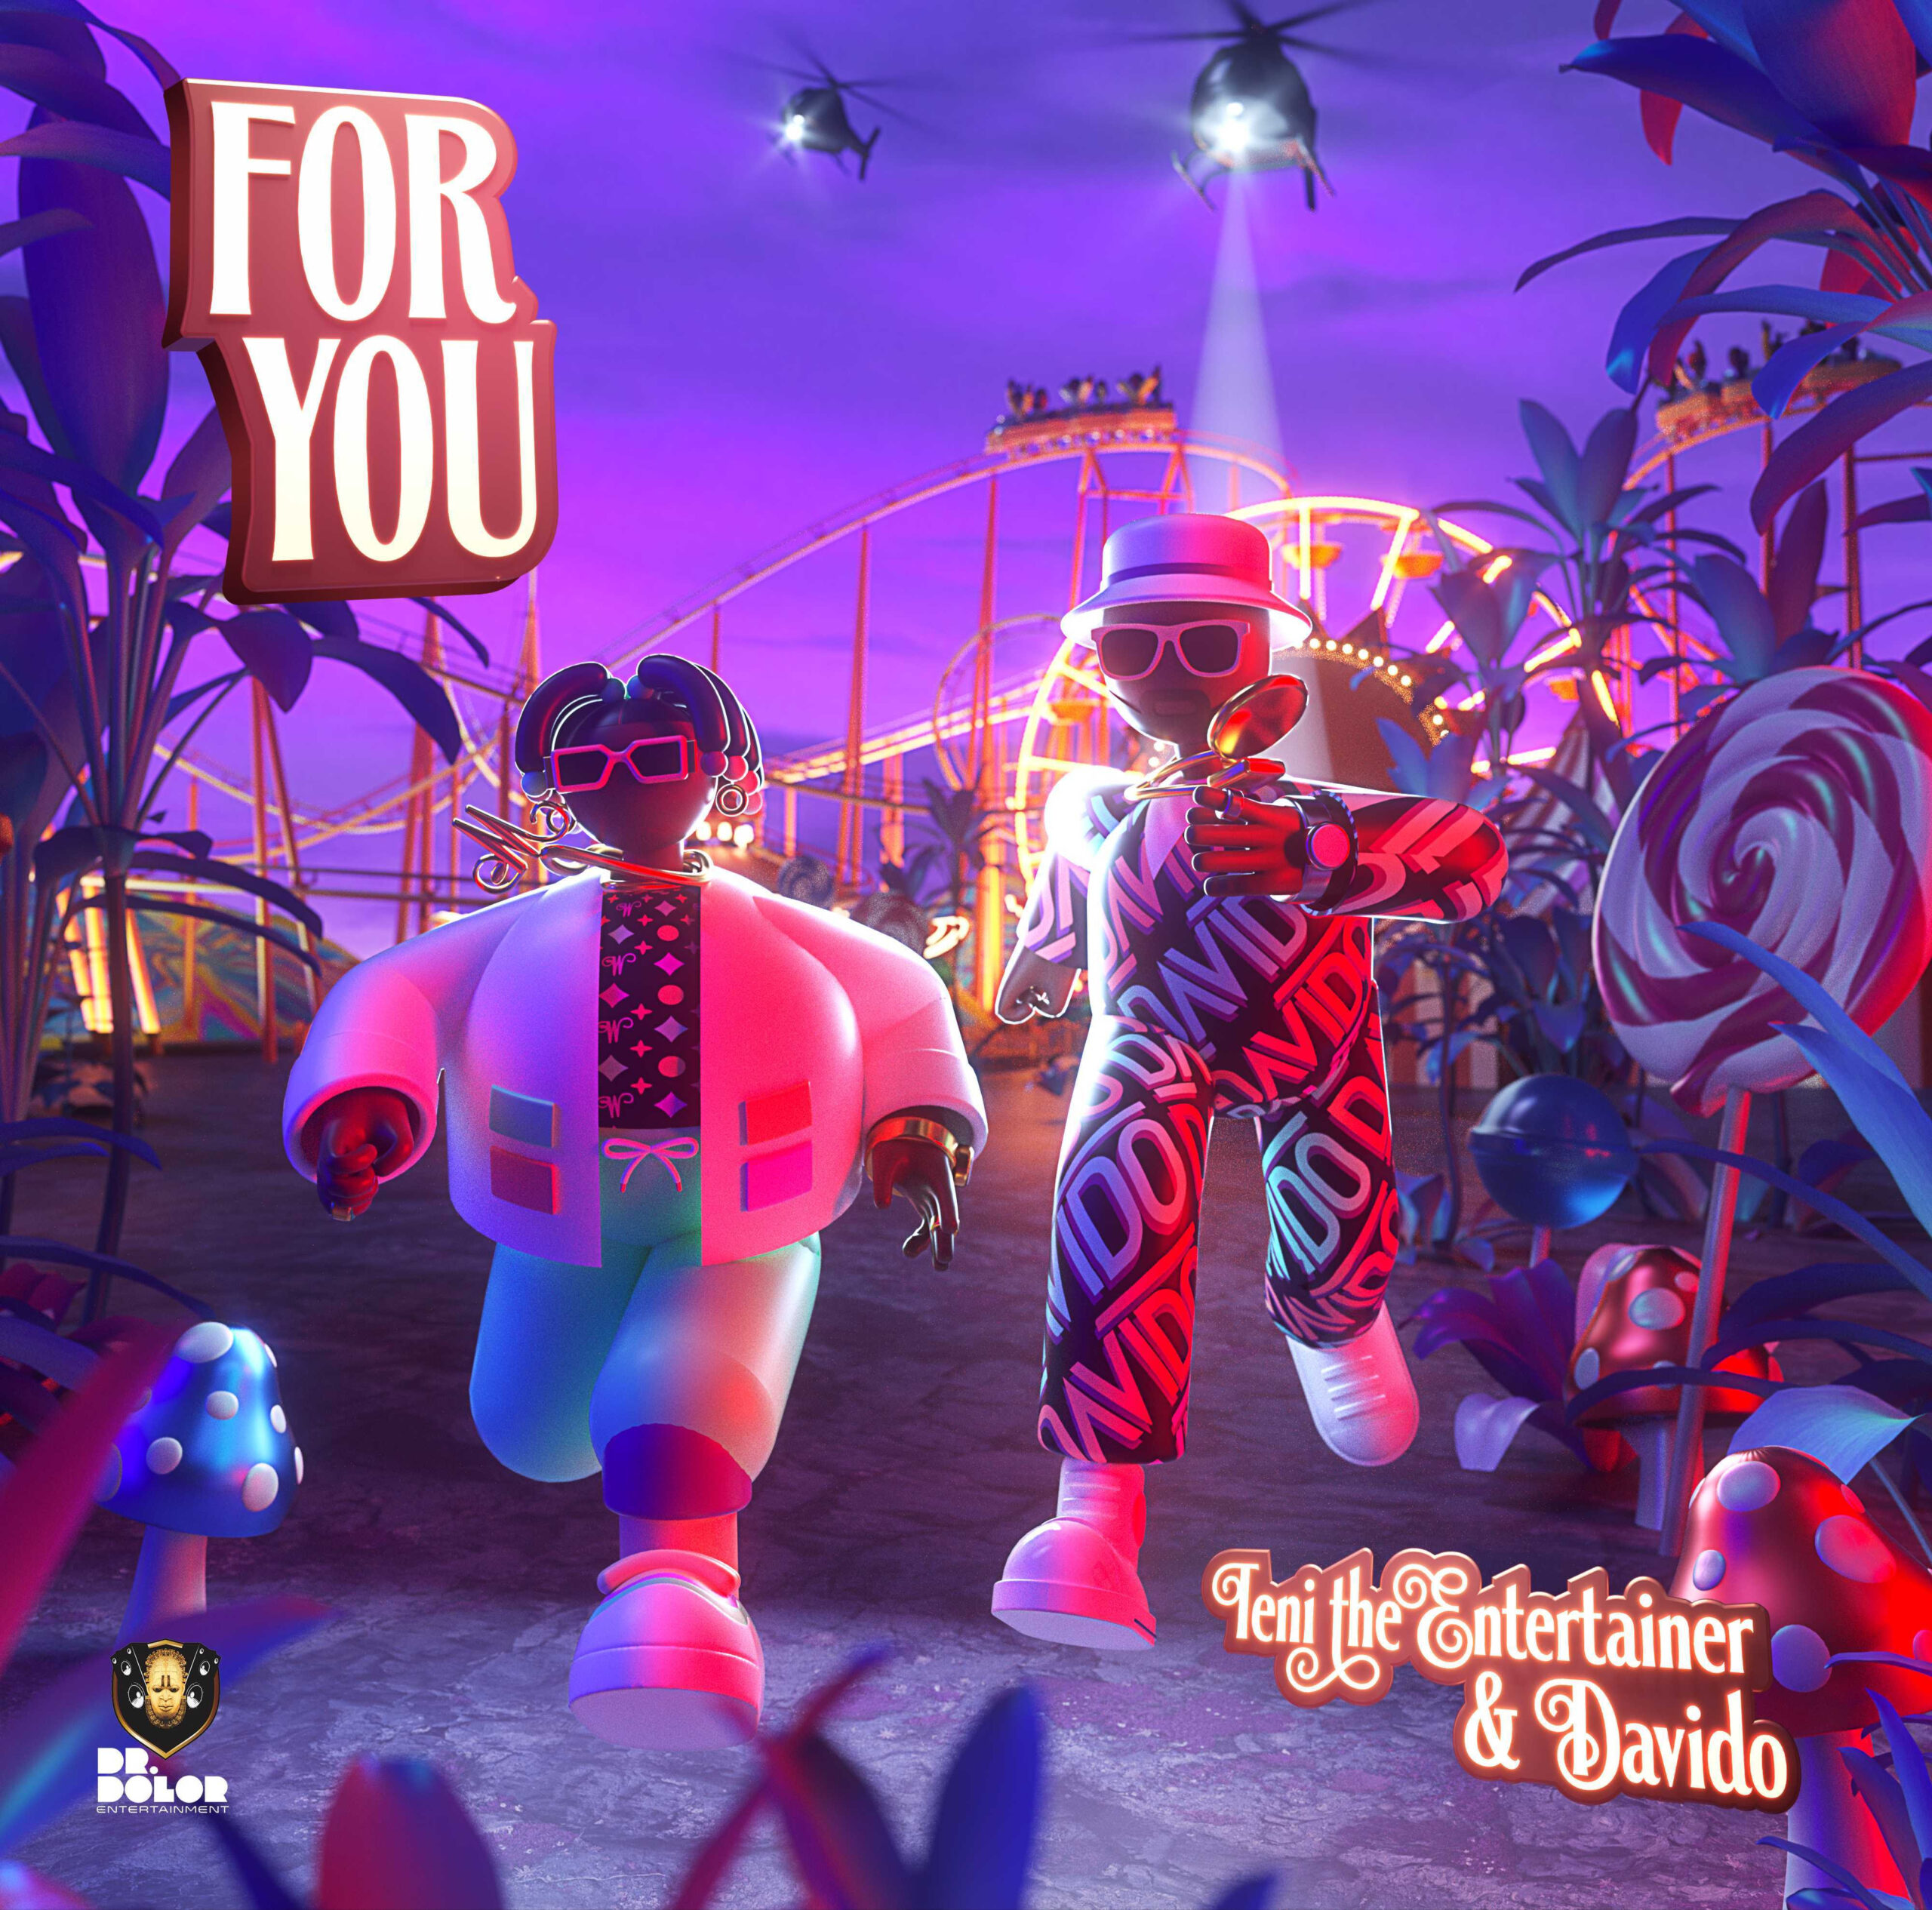 Teni Teams Up With Davido In New Single 'For You'